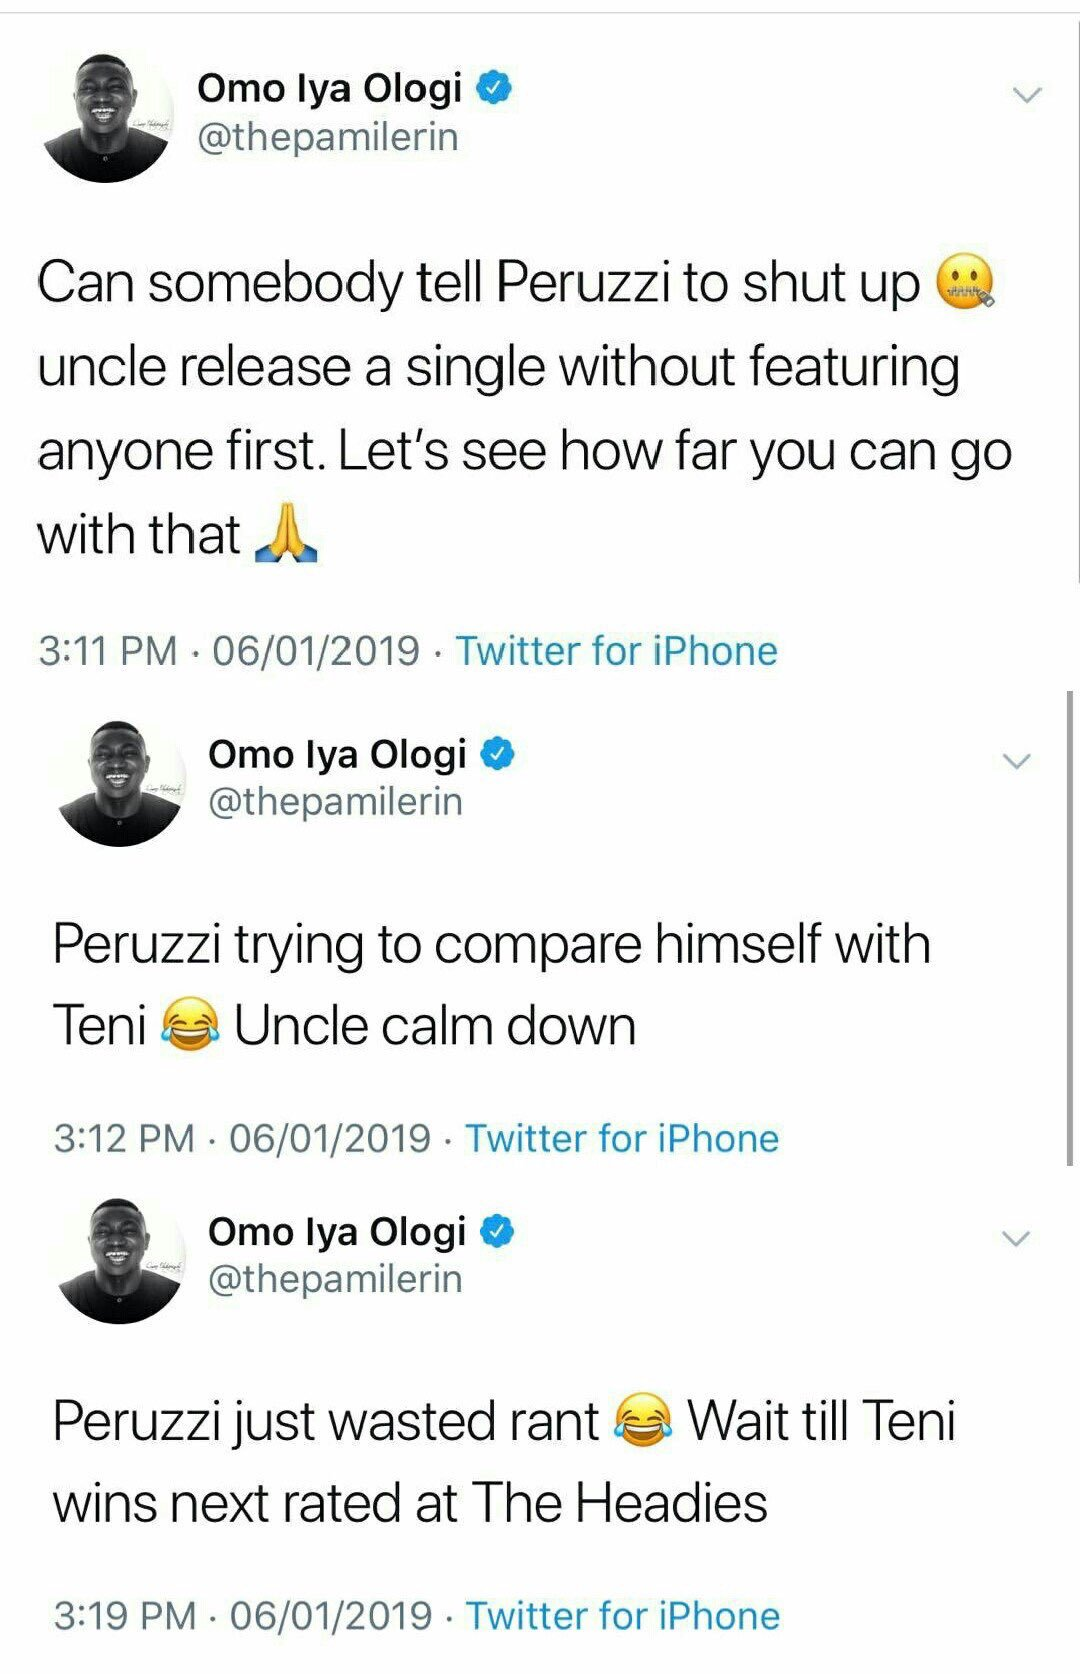 Peruzzi and Pamilerin